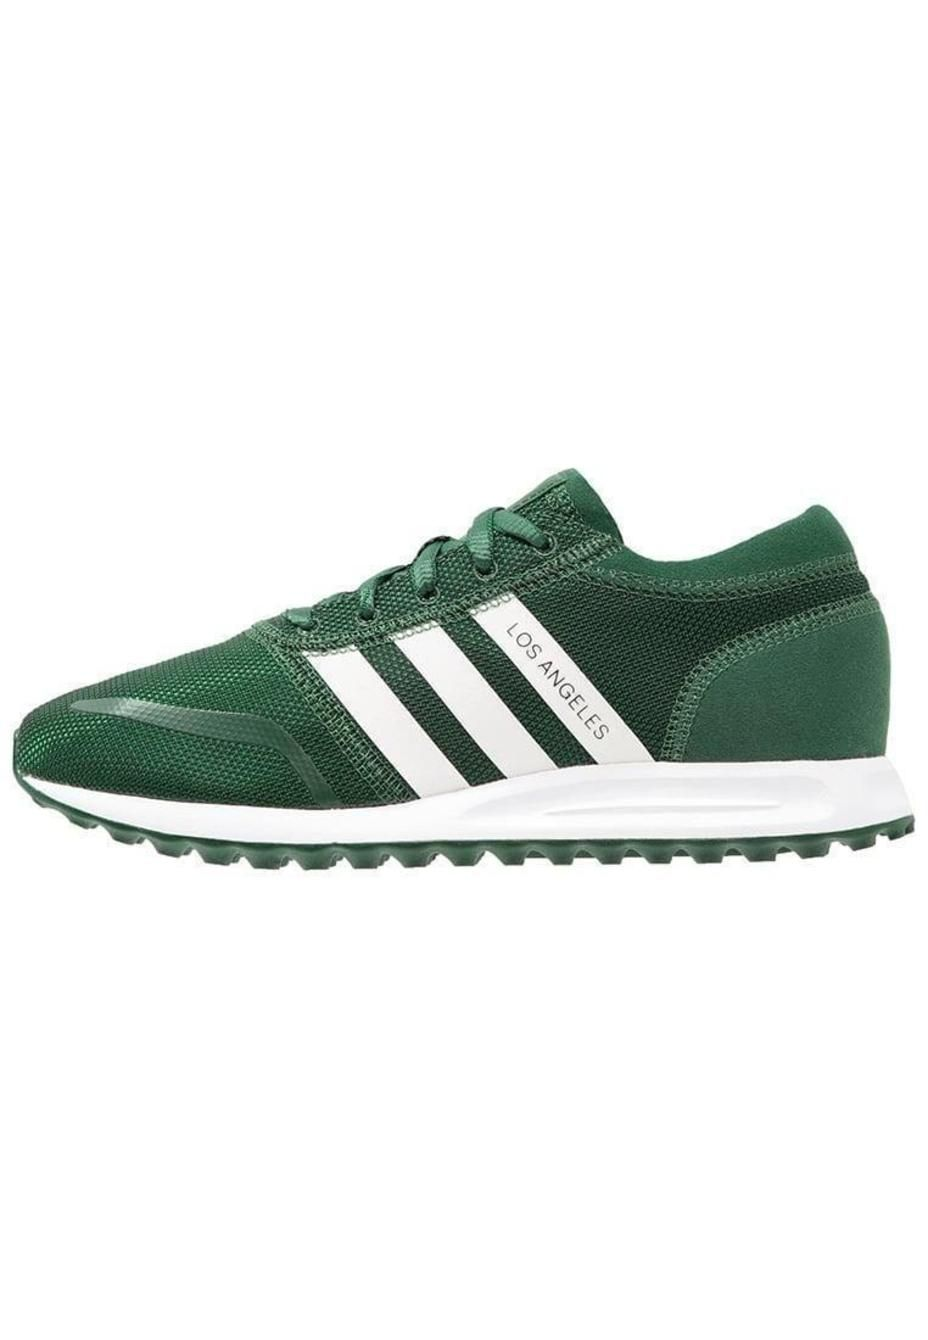 LOS ANGELES - Trainers - tech for/white/clear green http:// · Adidas  OriginalsTrainersLos AngelesSneakers